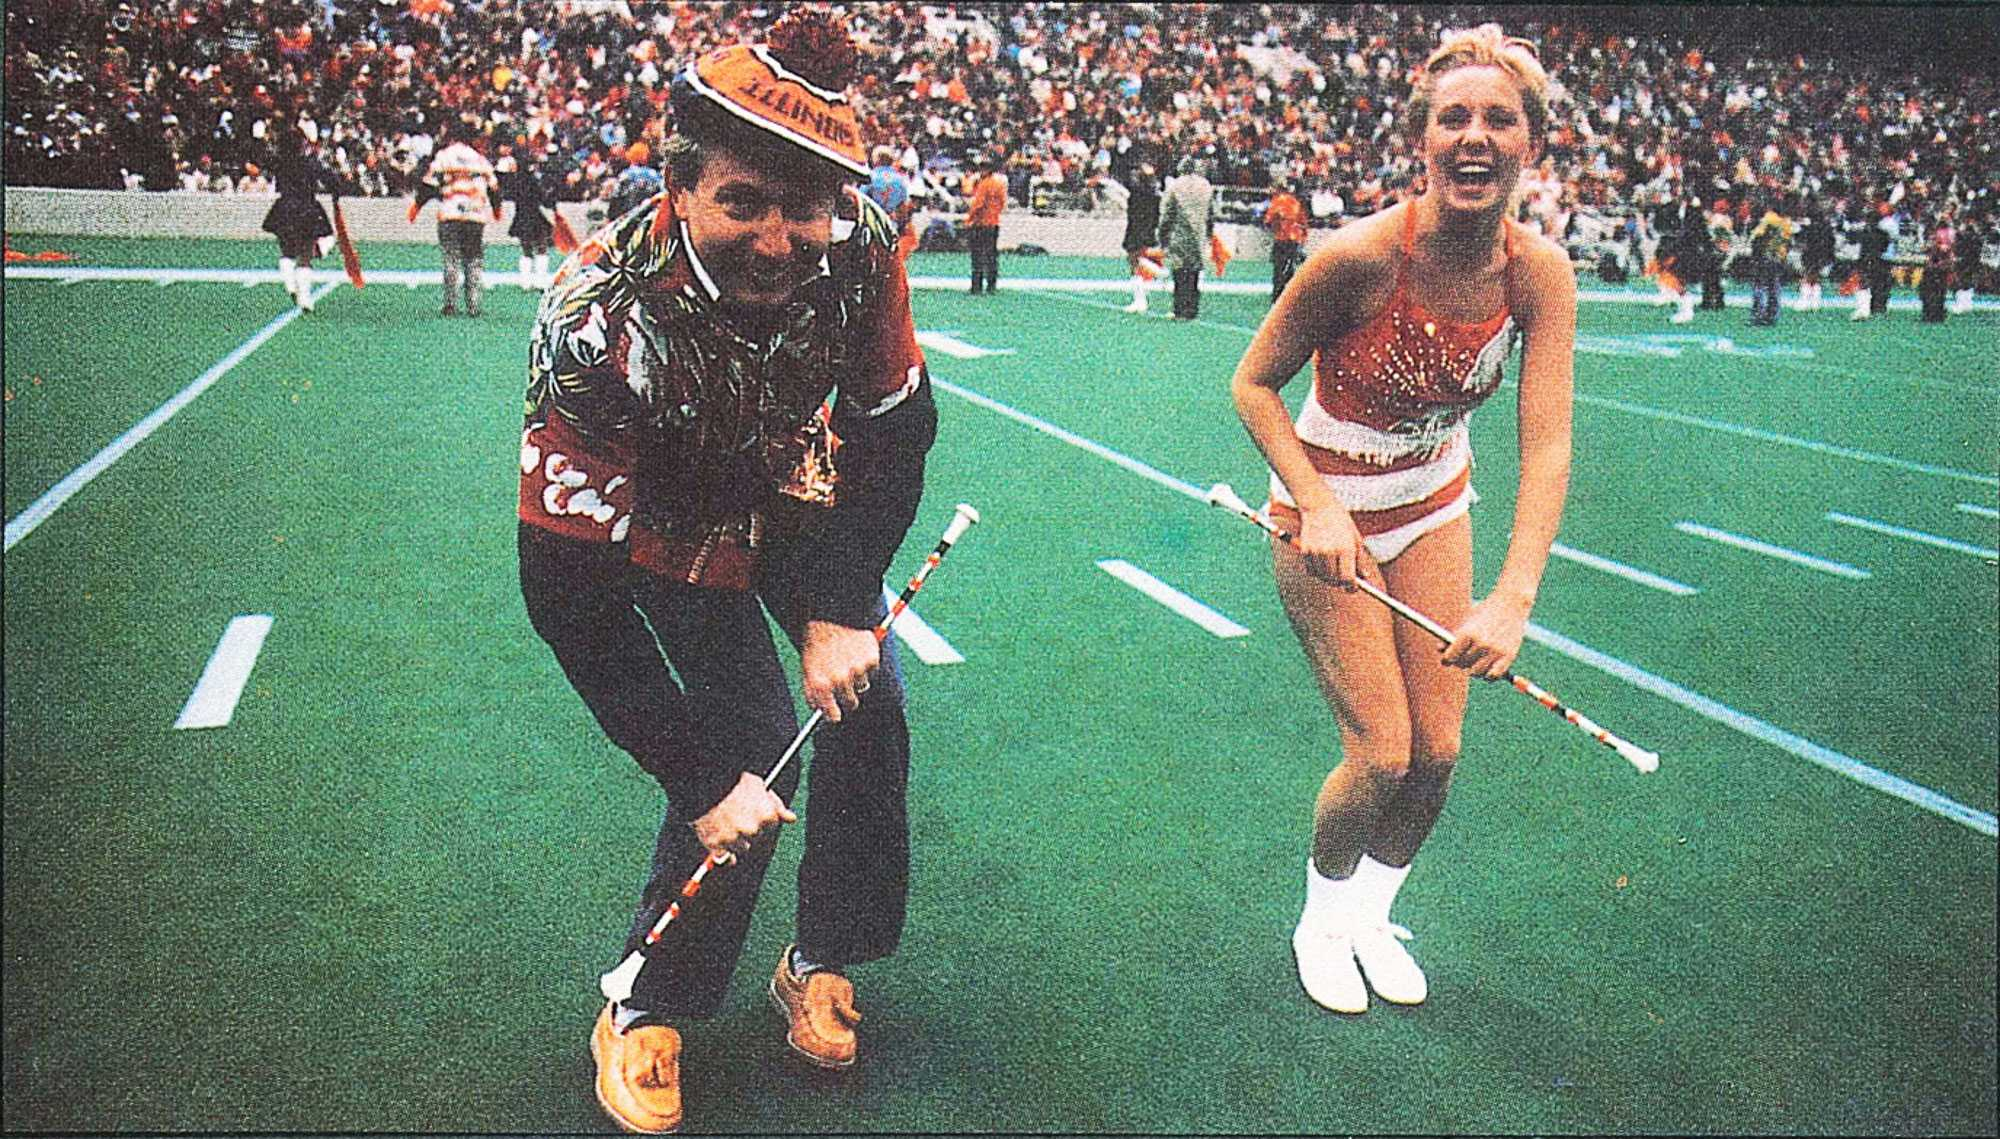 Molly Nicholas, alumni, and her dad show the crowd where she got her talent at the Dad's Weekend football game in 1986.